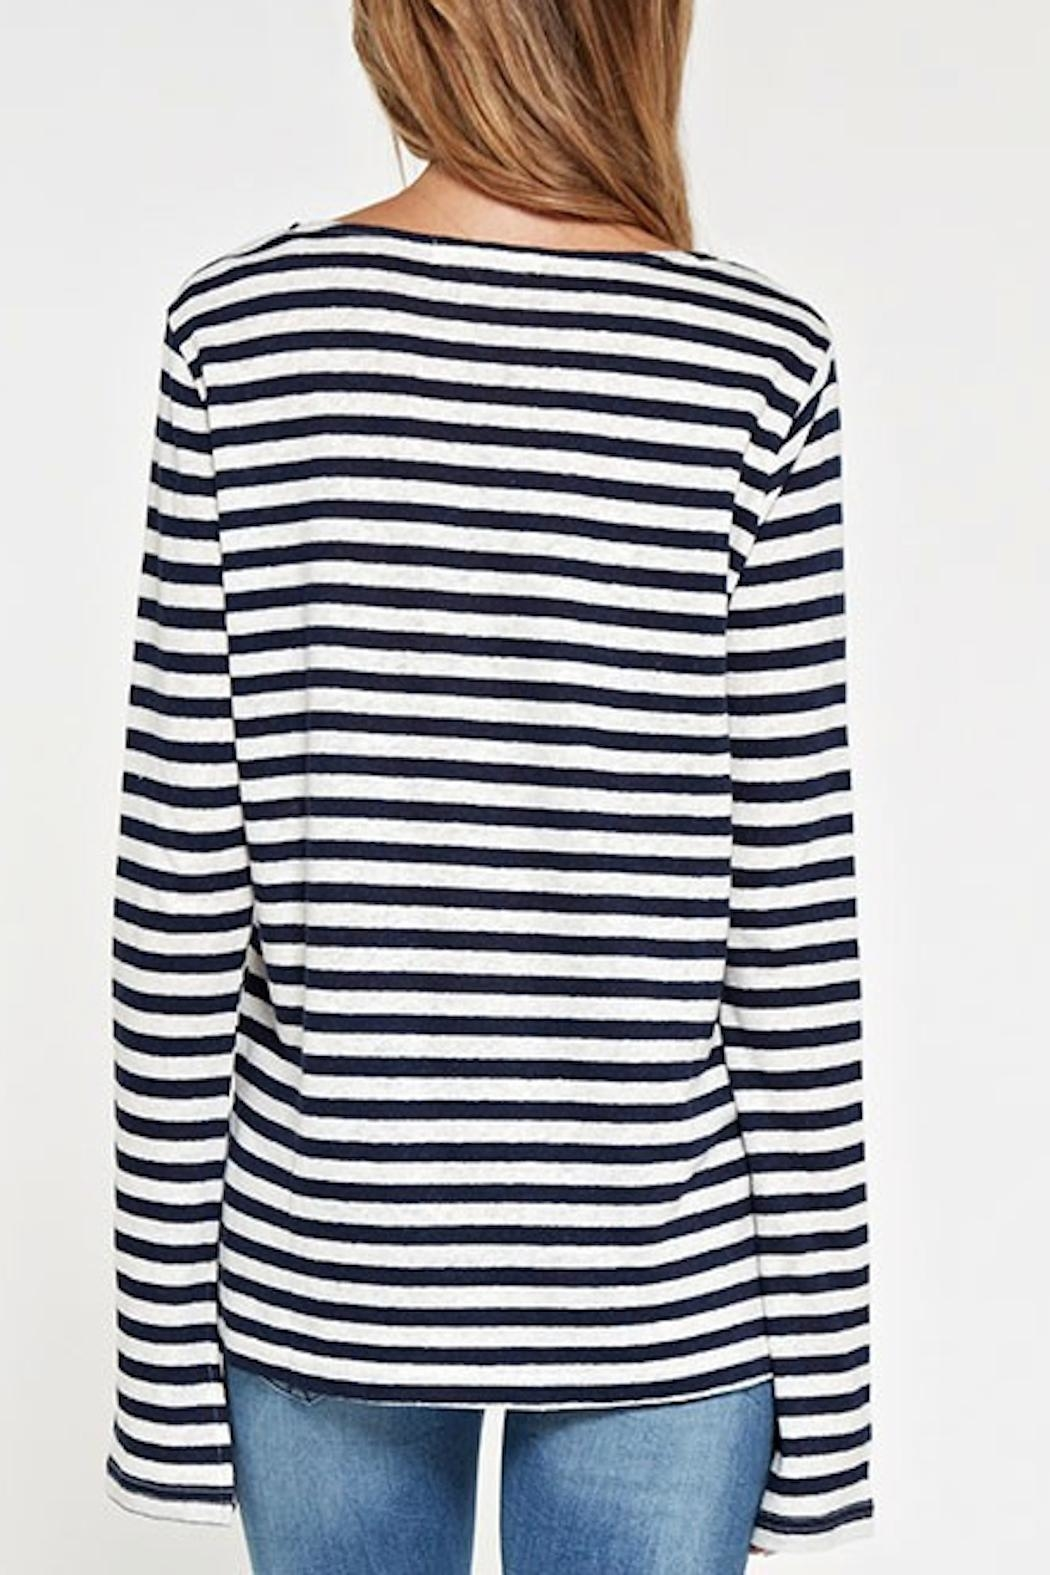 Apricot Lane Striped Linen Top-Navy - Side Cropped Image